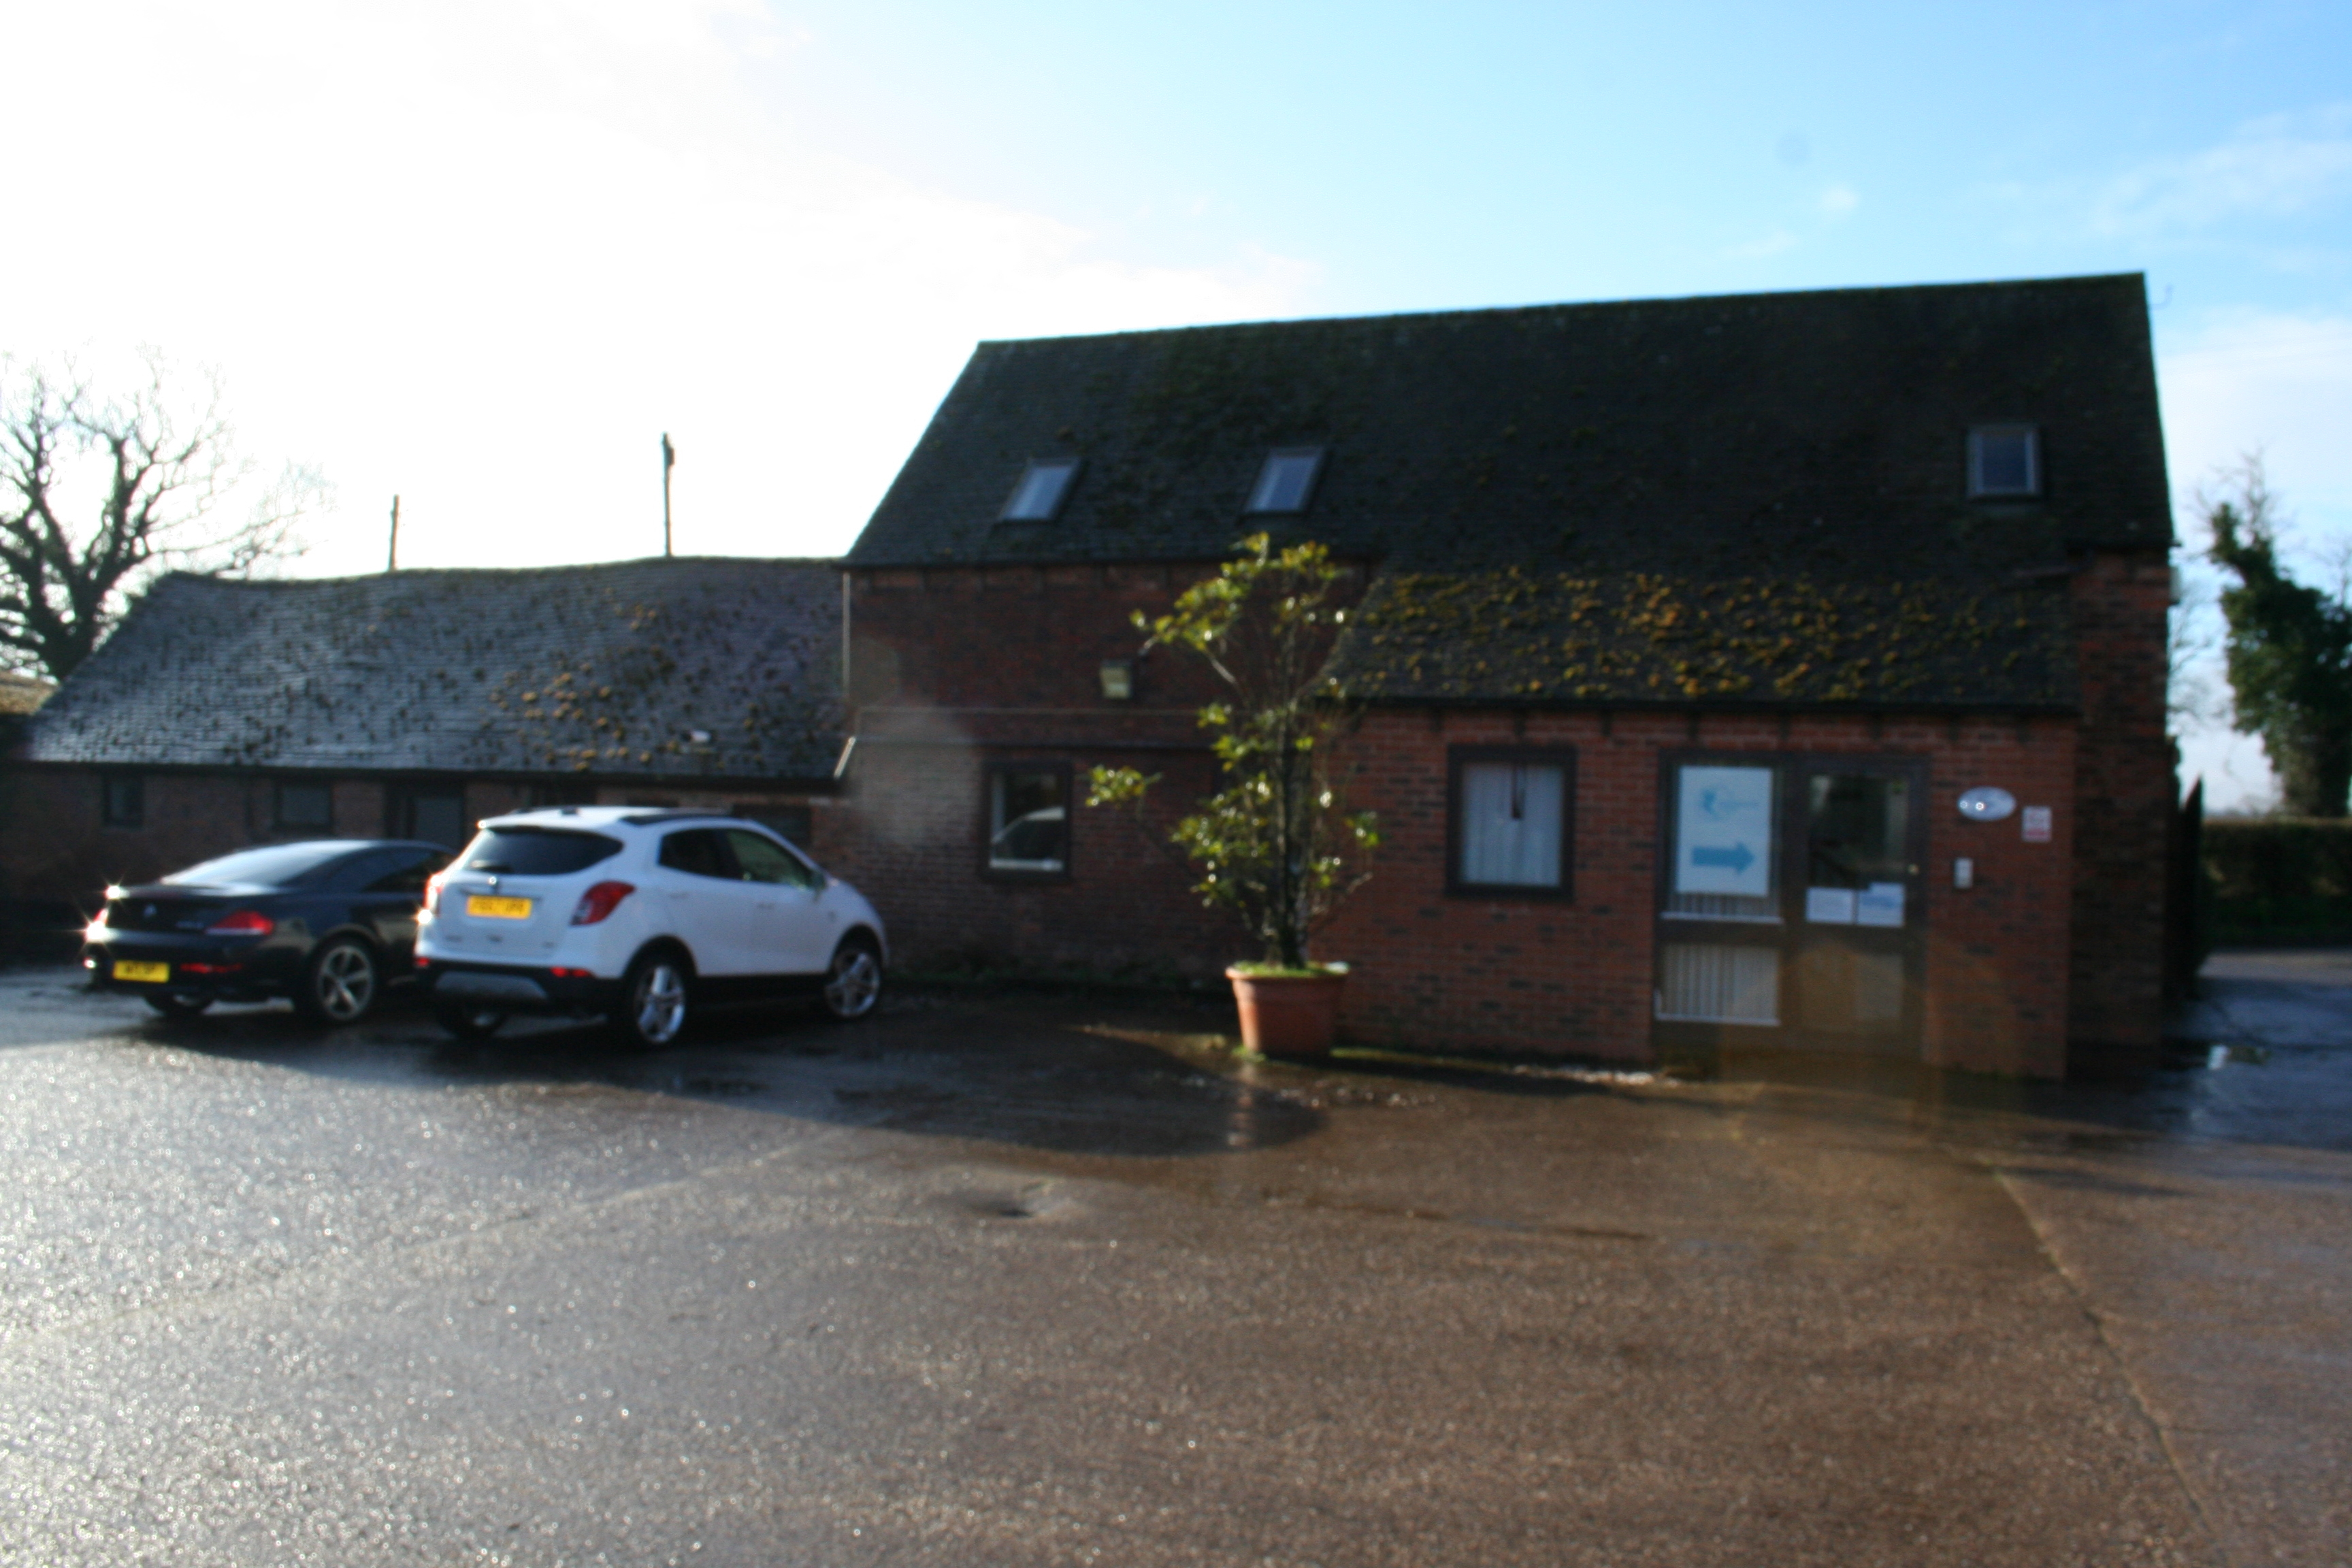 OFFICES TO LET – NEW INSTRUCTION – CAMP FARM BARN, CAMP FARM, KNOWLE HILL, HURLEY CV9 2JF